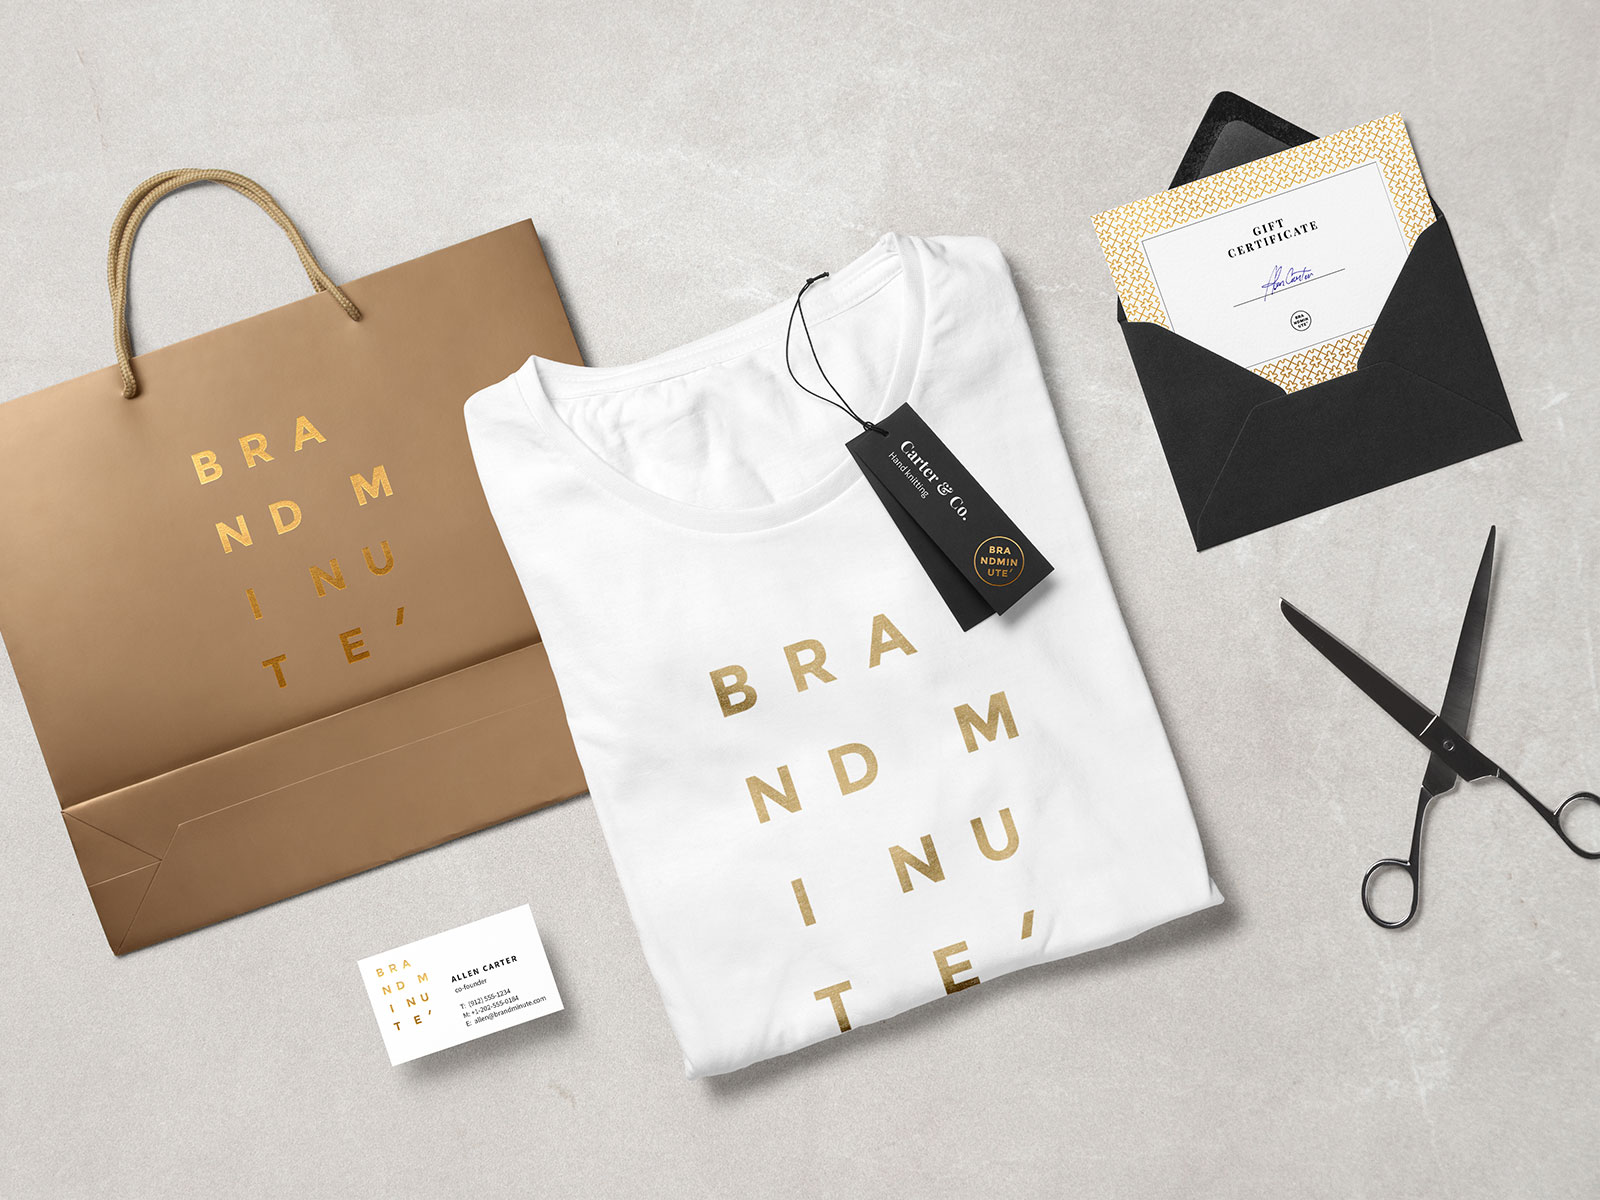 Free-Branding-Mockup-Scene-T-Shirt,-Envelop,-Business-Card-&-Shopping-Bag